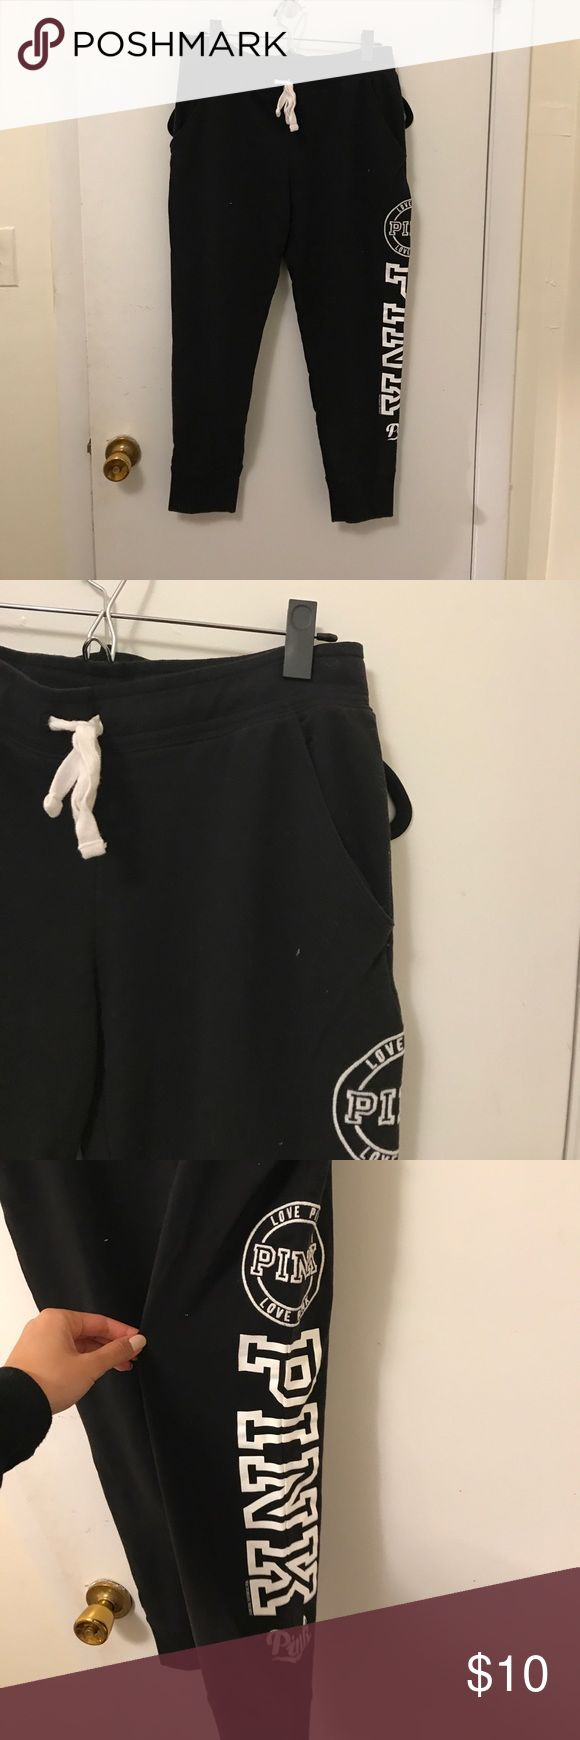 PINK Jogger Sweatpants Black jogger  sweatpants with PINK lettering in white on the side. Pockets in front. Worn once. PINK Victoria's Secret Pants Track Pants & Joggers